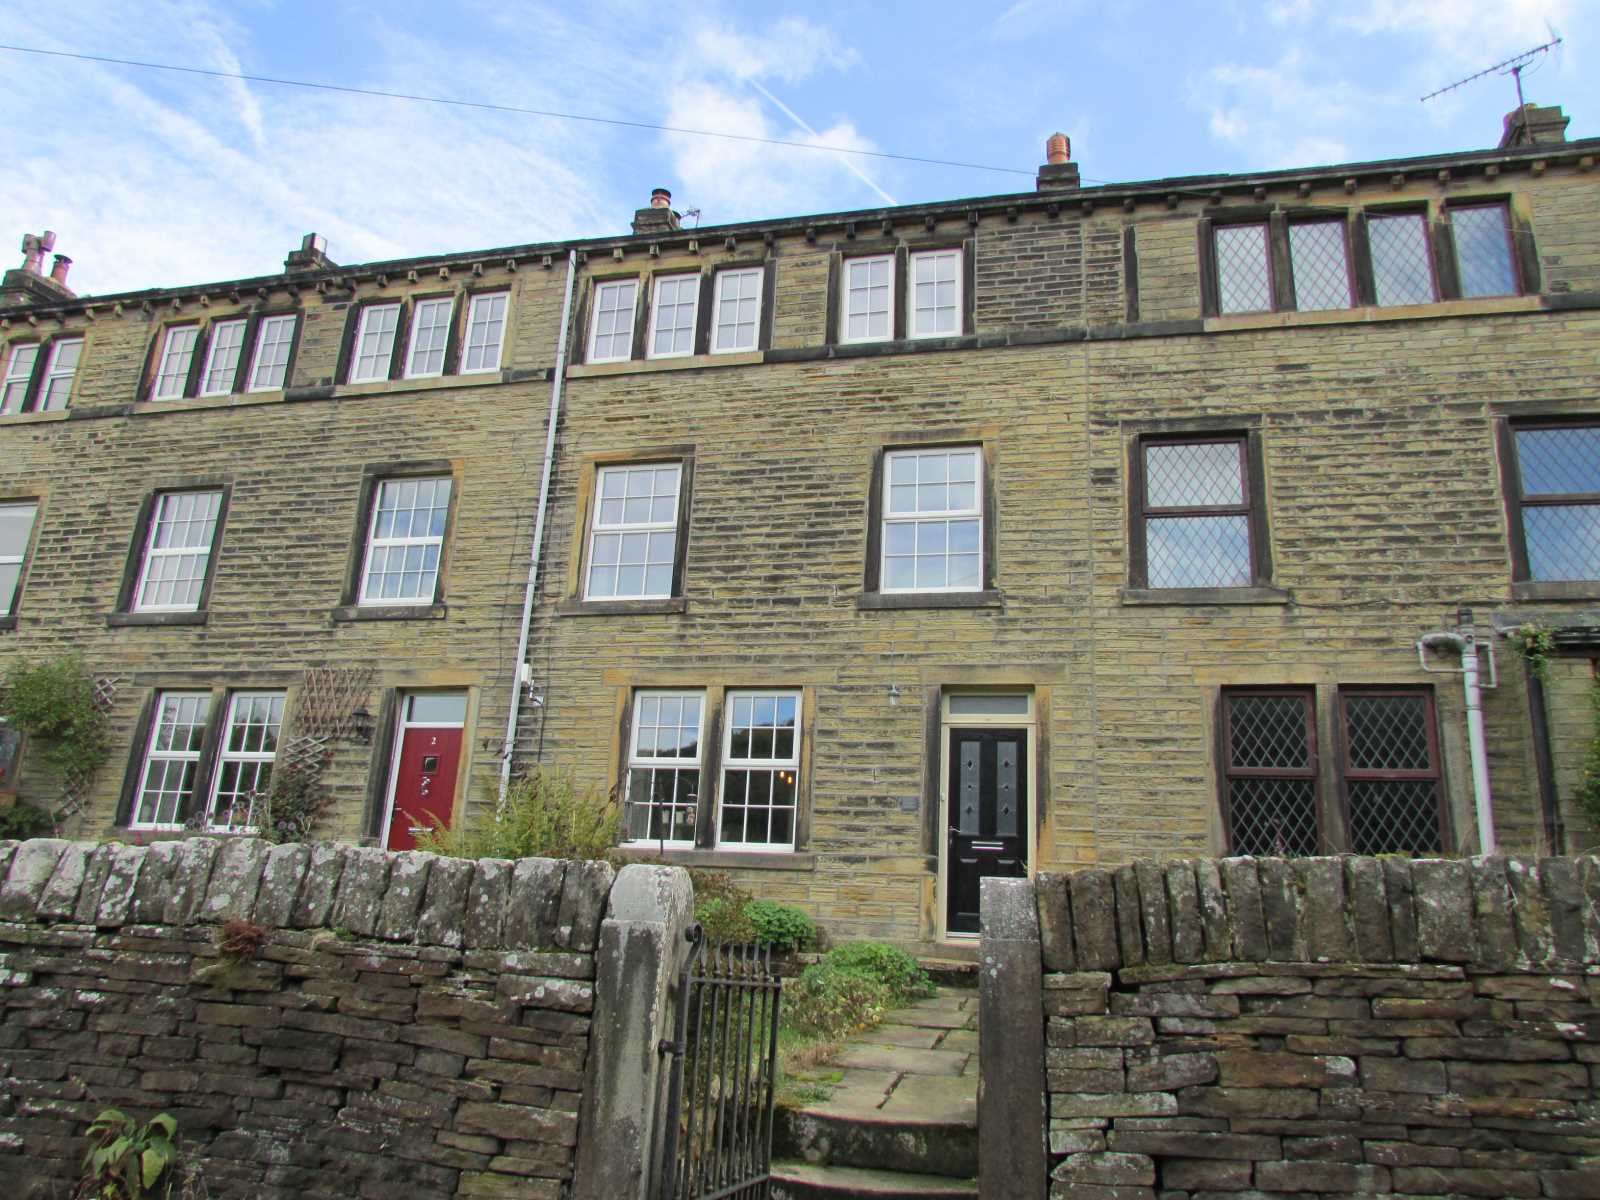 3 Choppards Buildings, Choppards Lane, Holmfirth  HD9 2RW